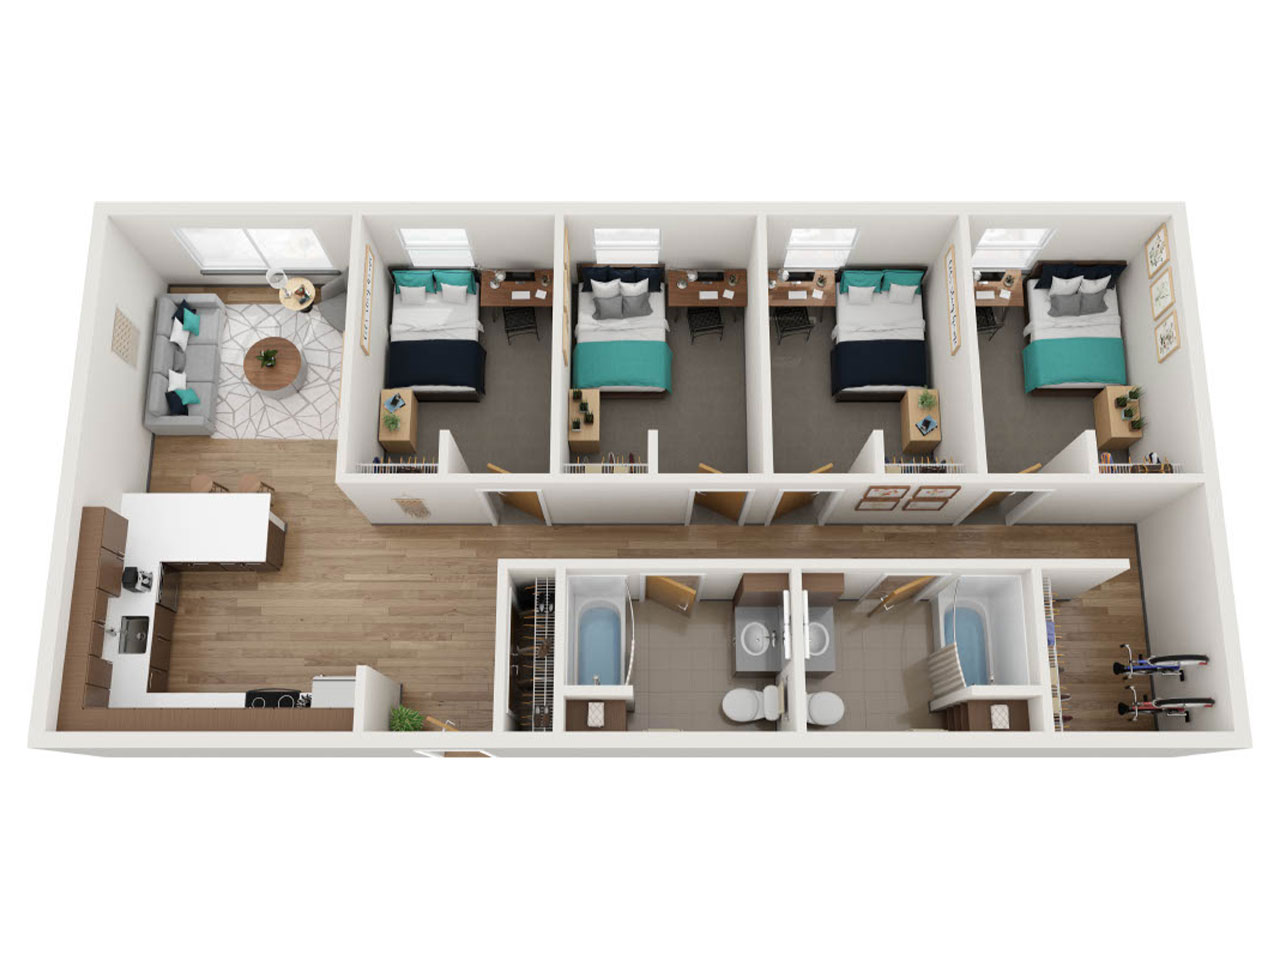 Aerial View of a Floor Plan for a 4 Bedroom Apartment at Stateside